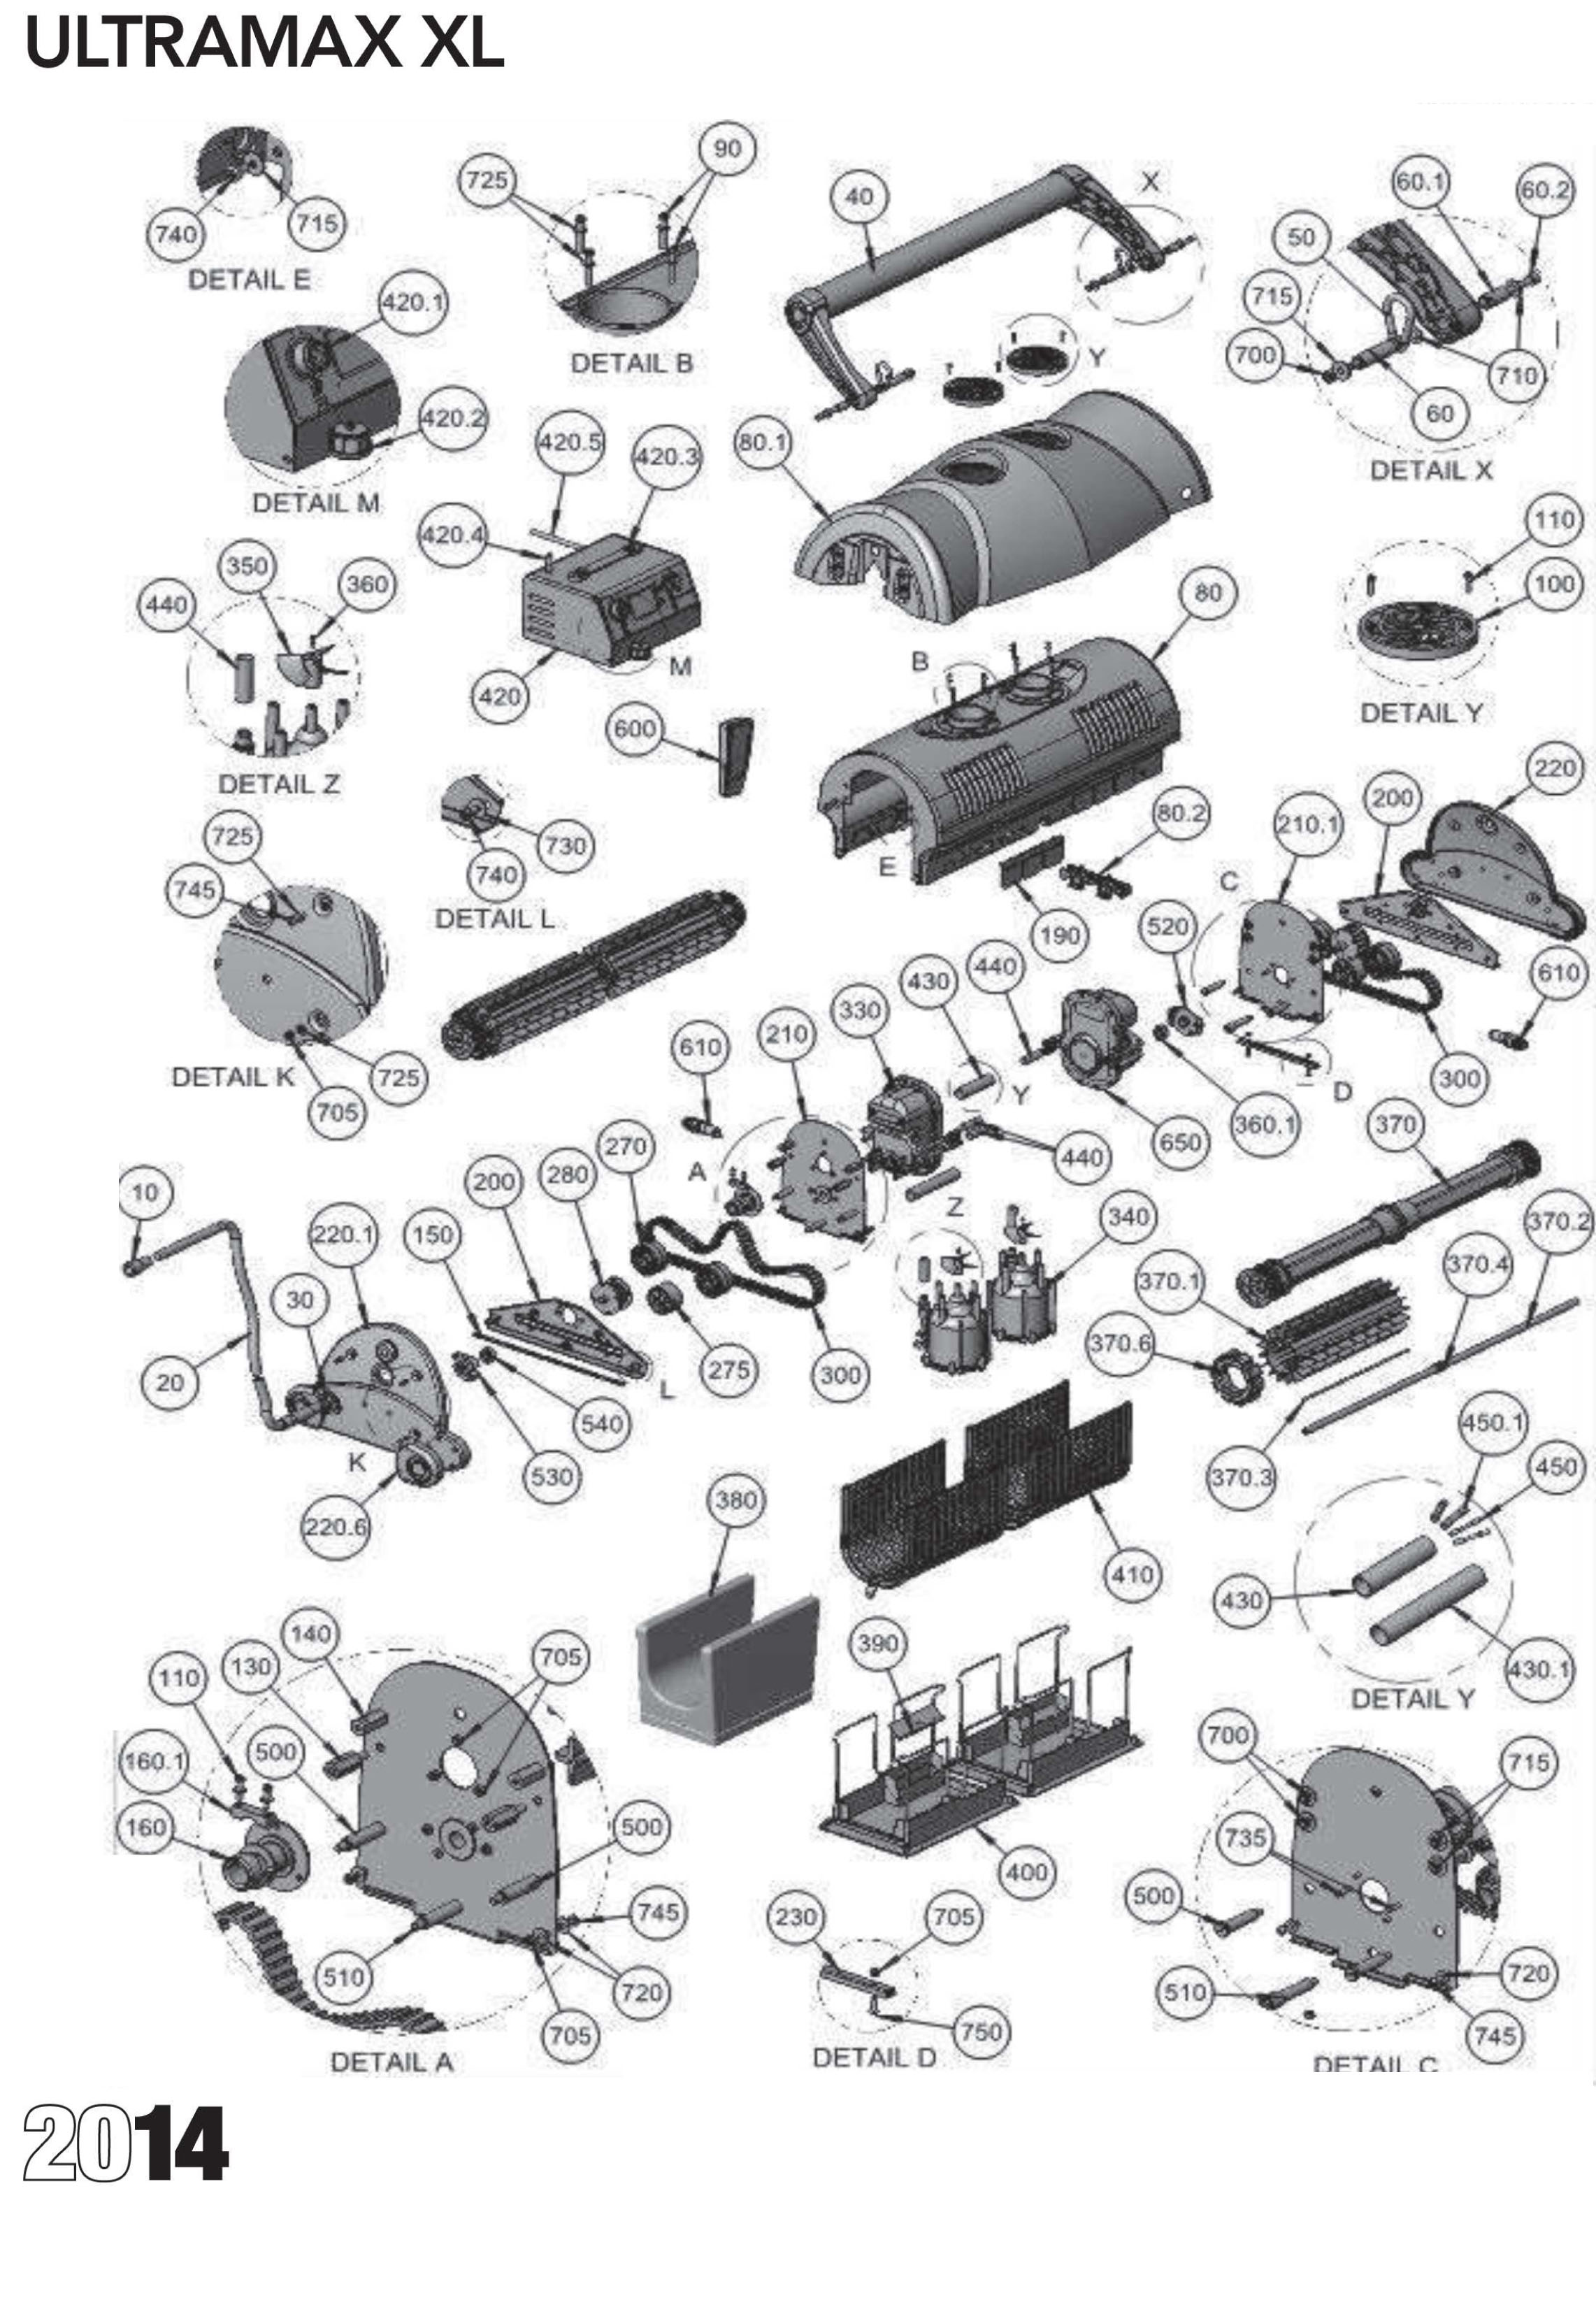 Ultramax Xl Parts Diagram And Parts List